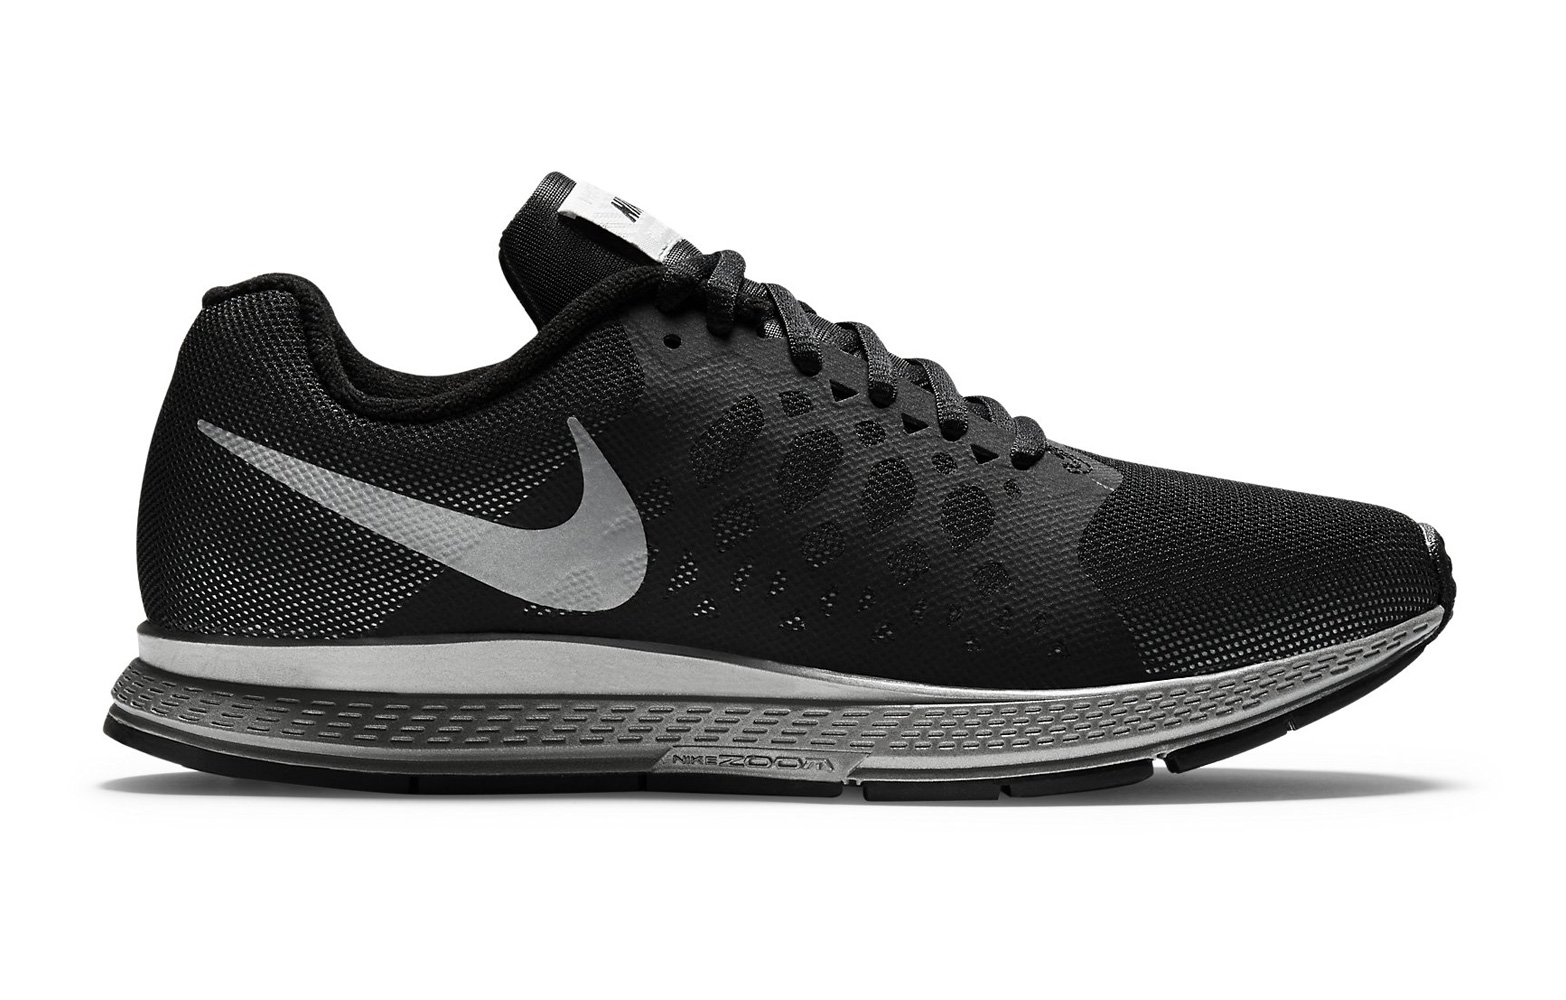 new concept cd846 1e249 NIKE Shoes ZOOM PEGASUS 31 FLASH Black Grey Women